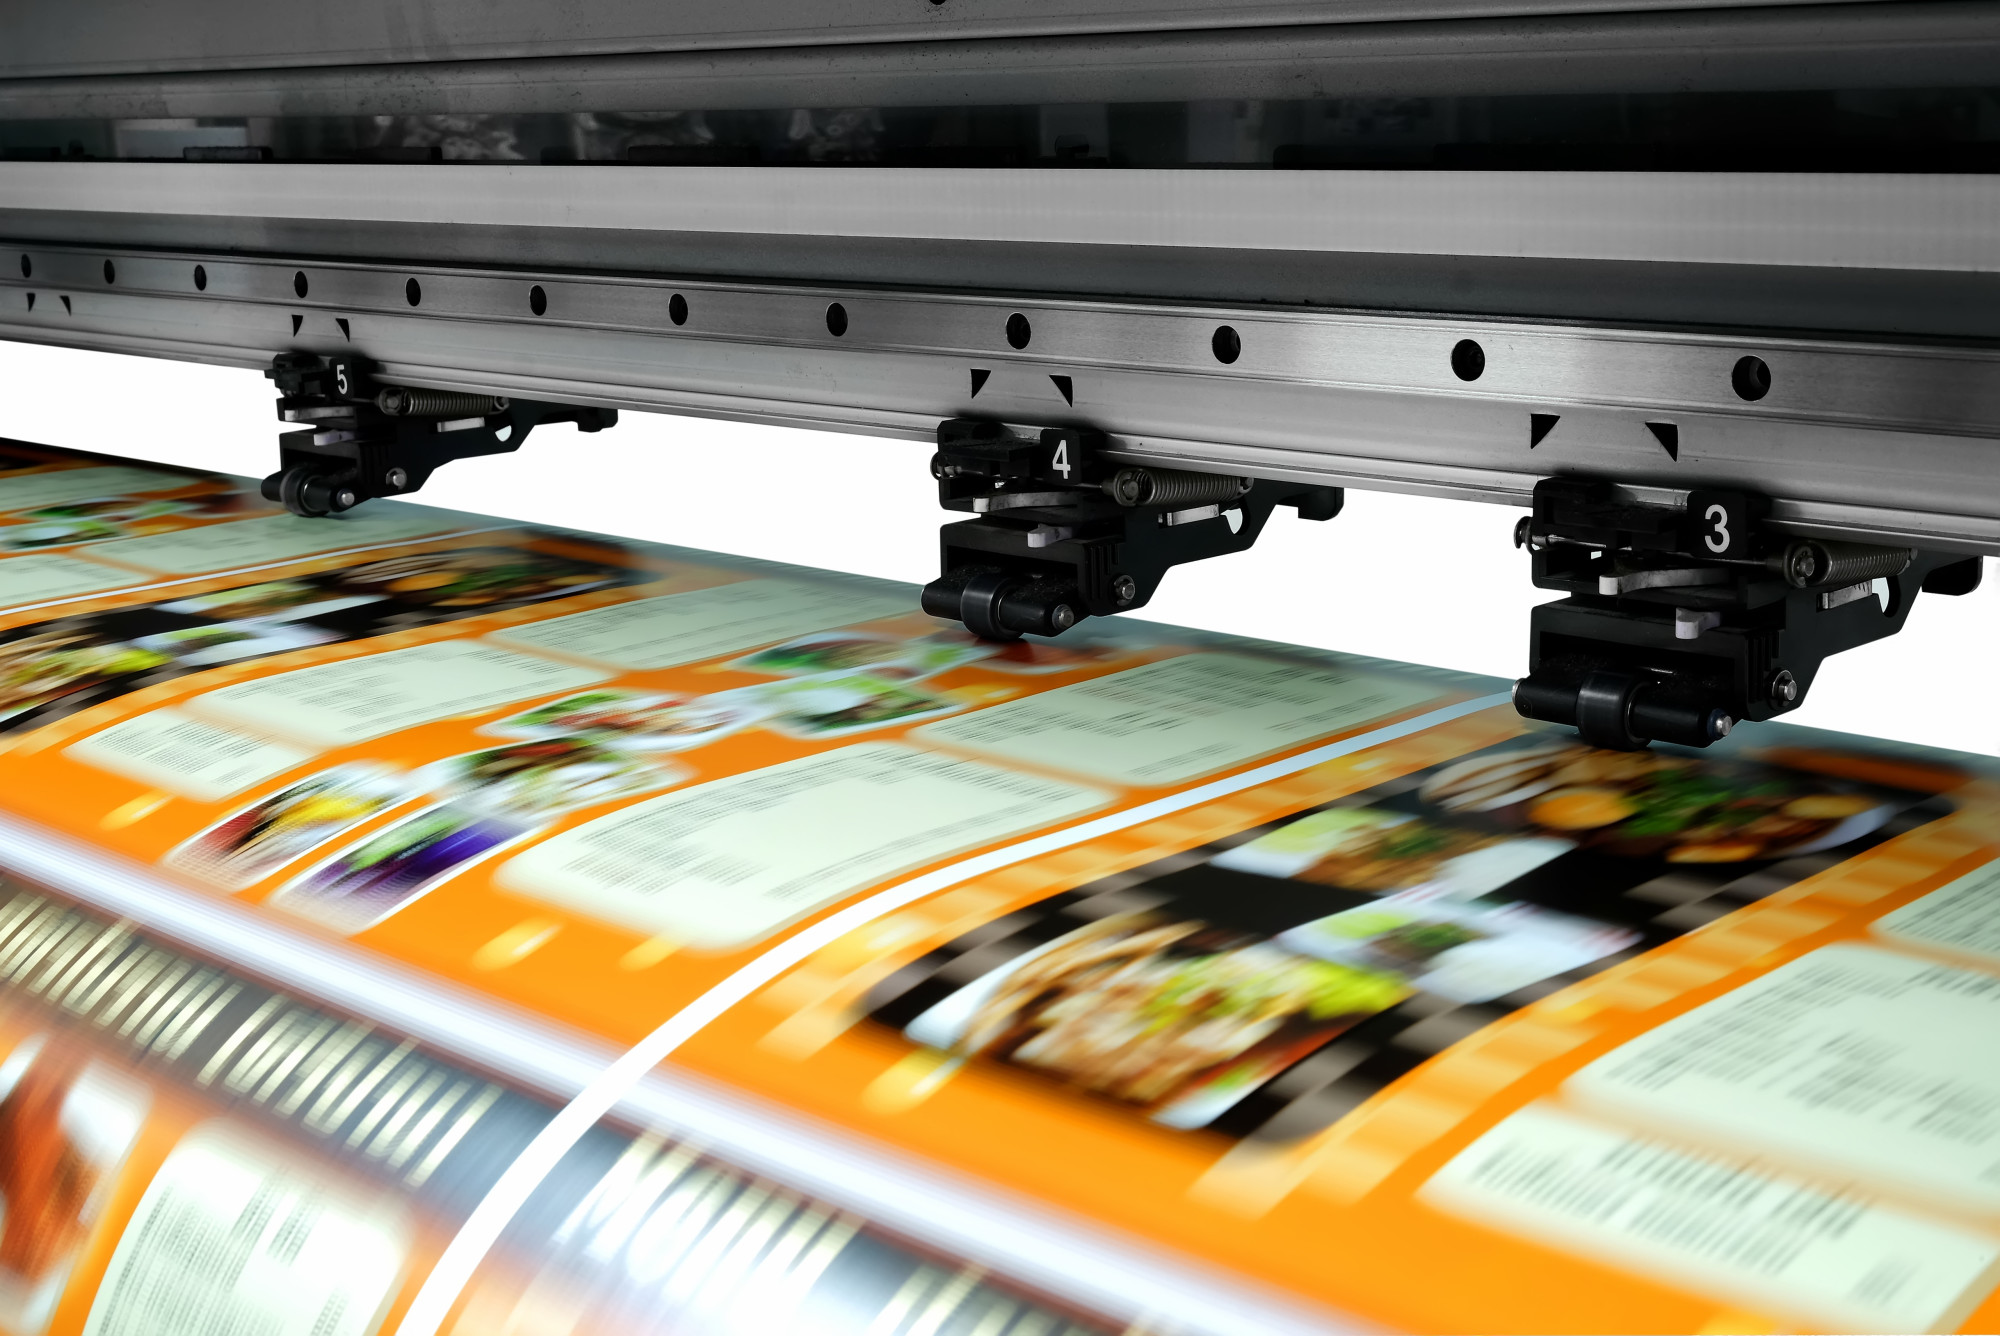 8 Advantages of Screen Printing You Probably Didn't Know